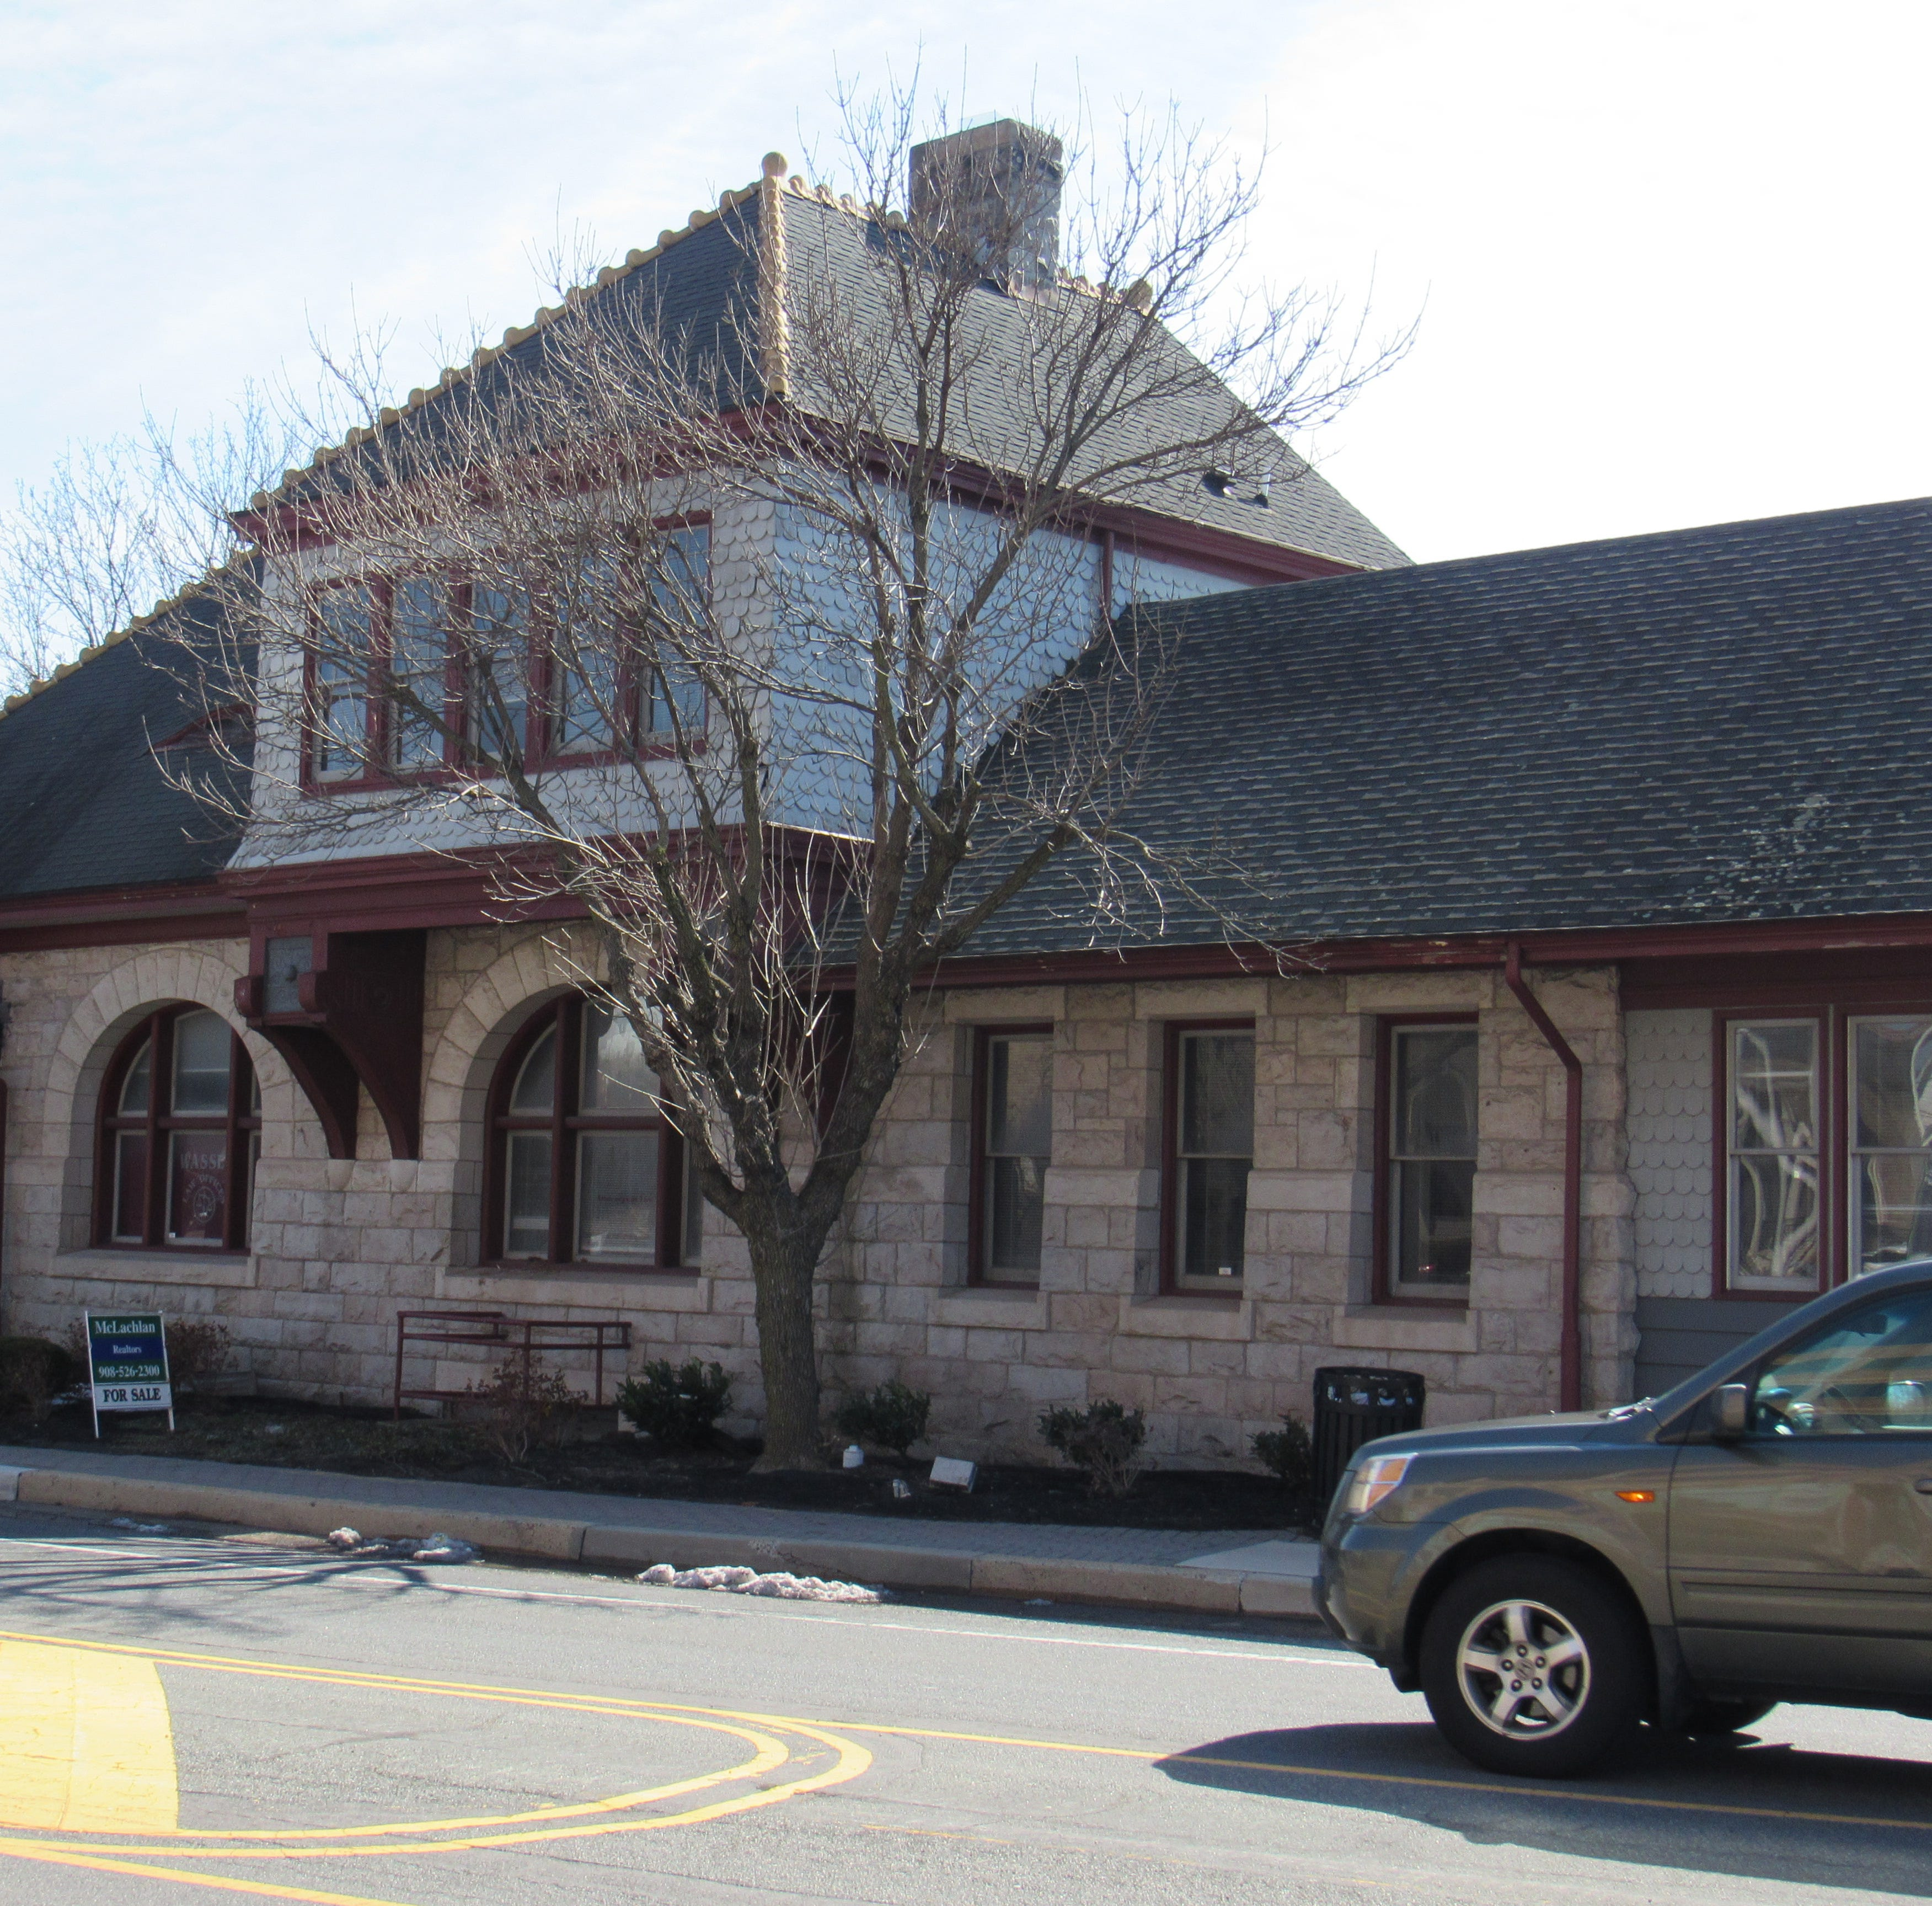 Somerville: Who wants to buy a train station?